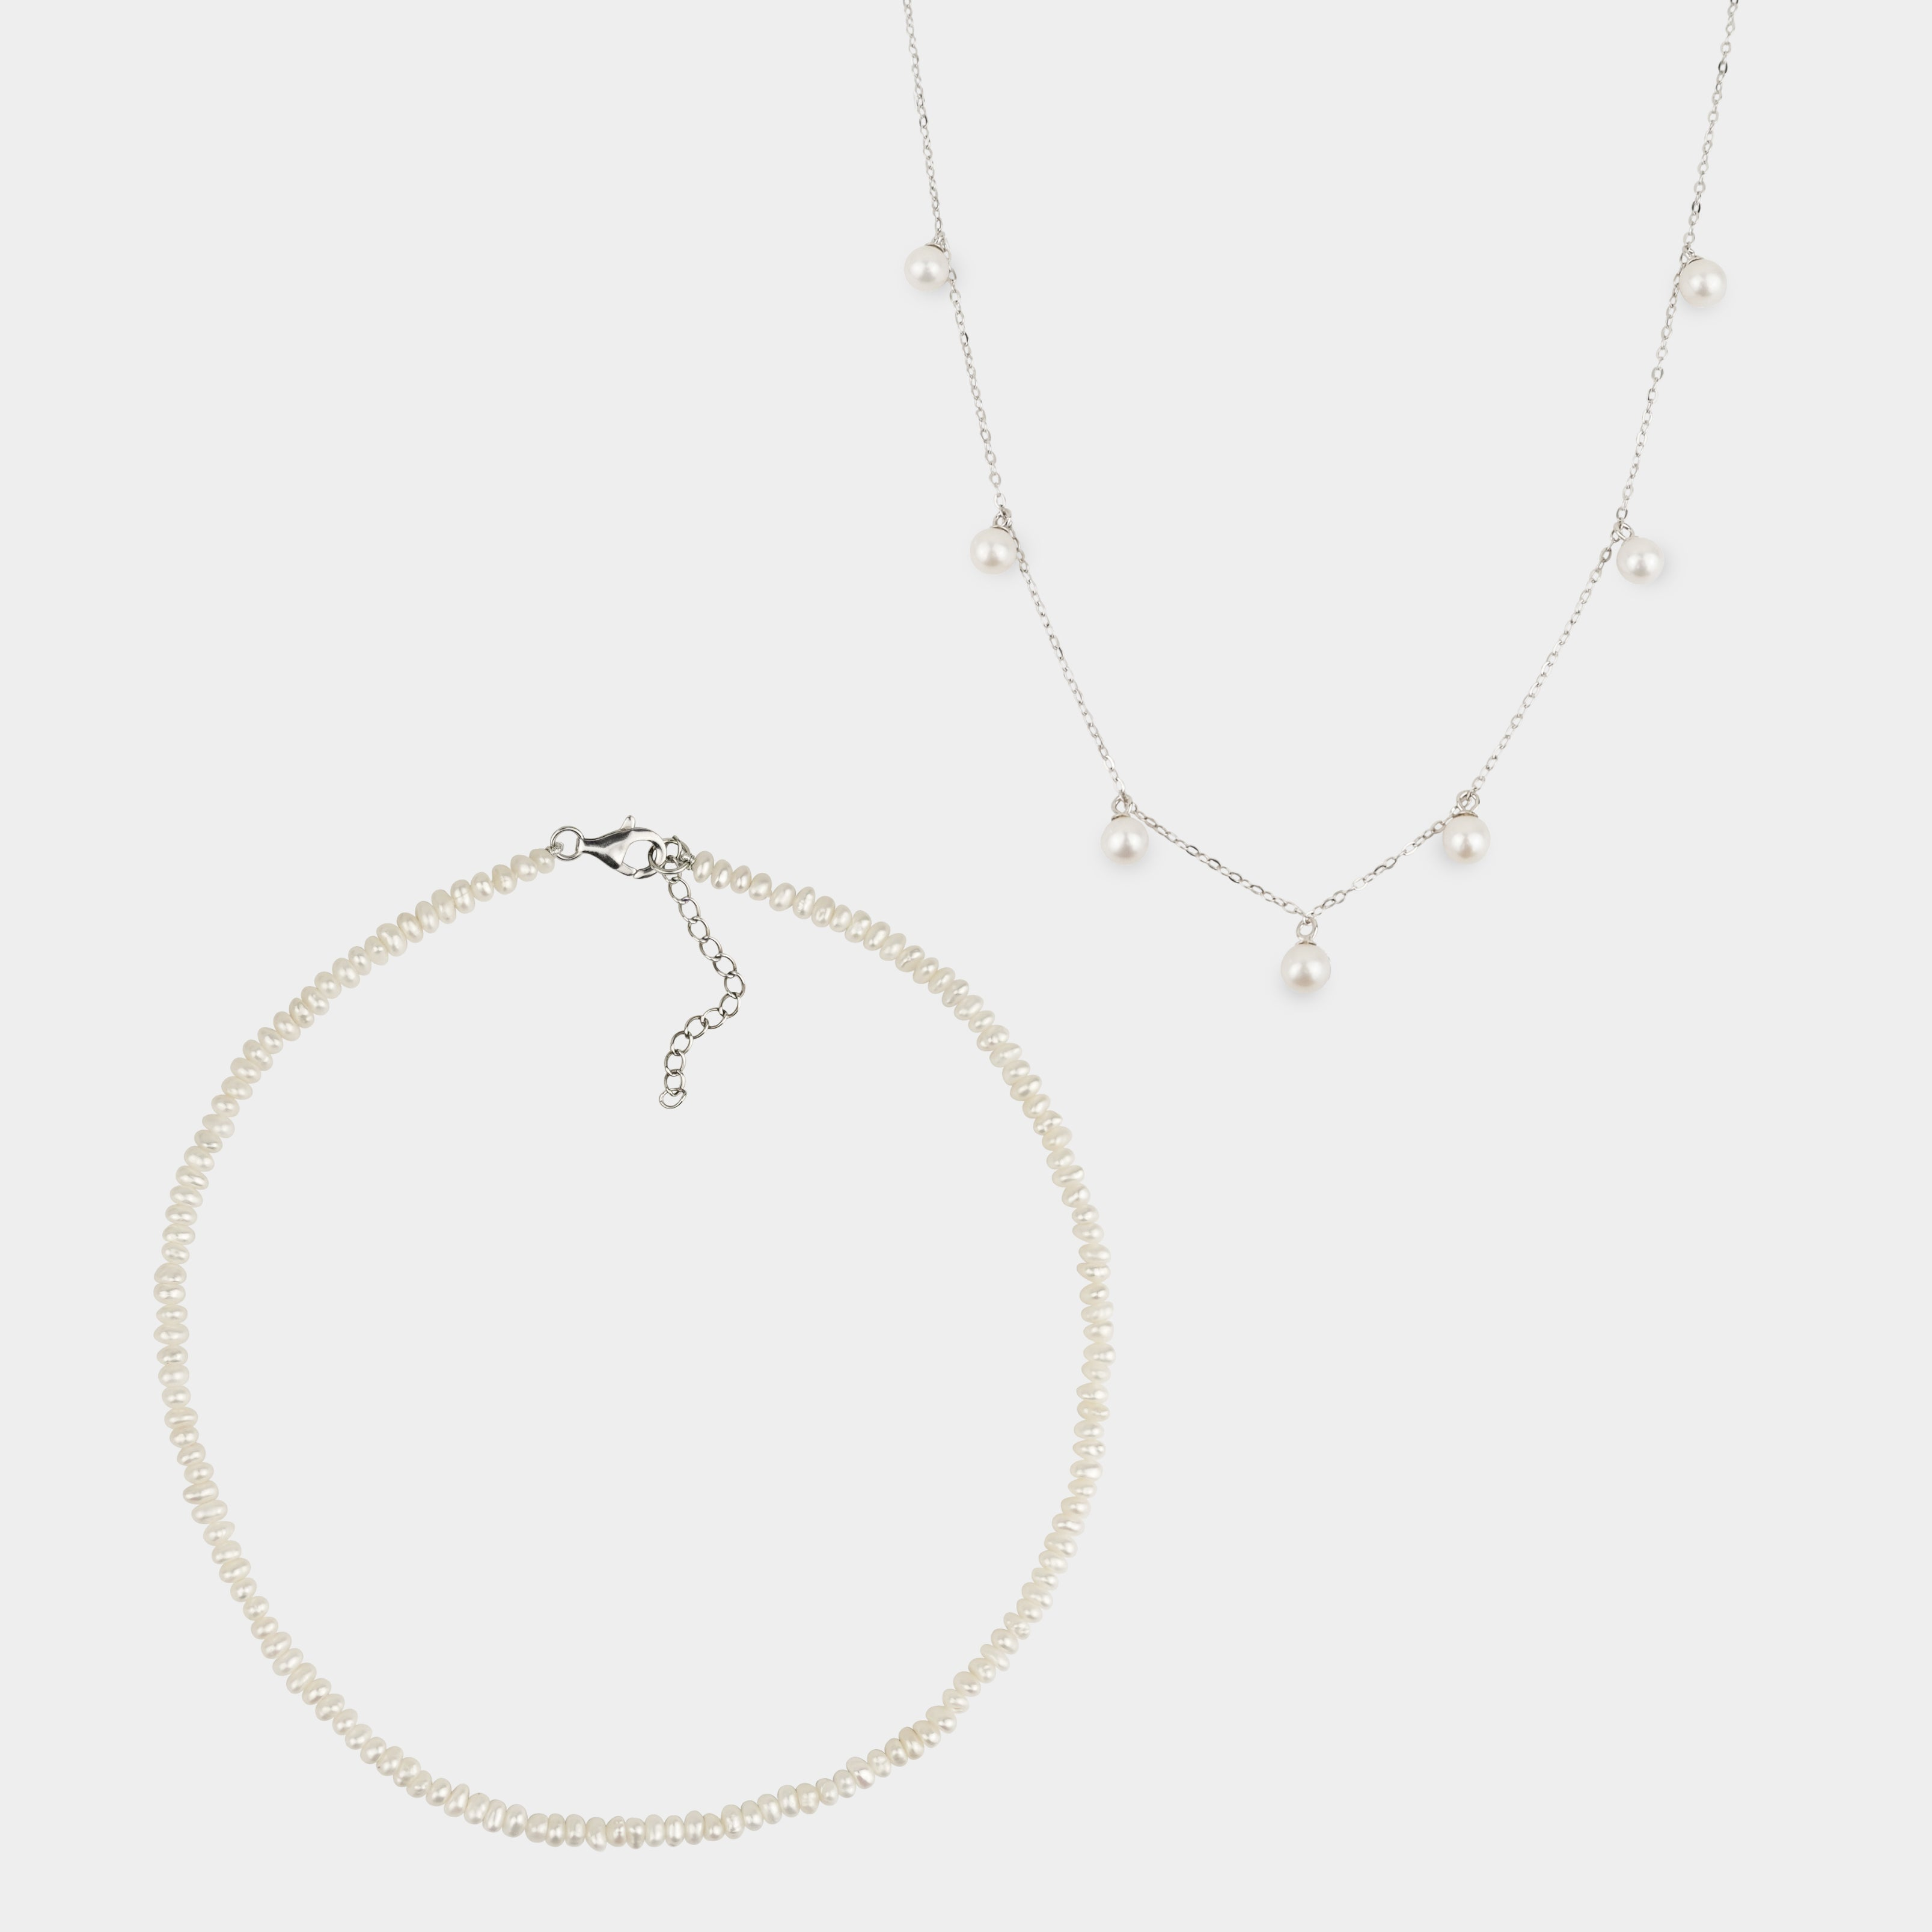 RAIN DROP PEARL NECKLACE + CHARLOTTE PEARL NECKLACE